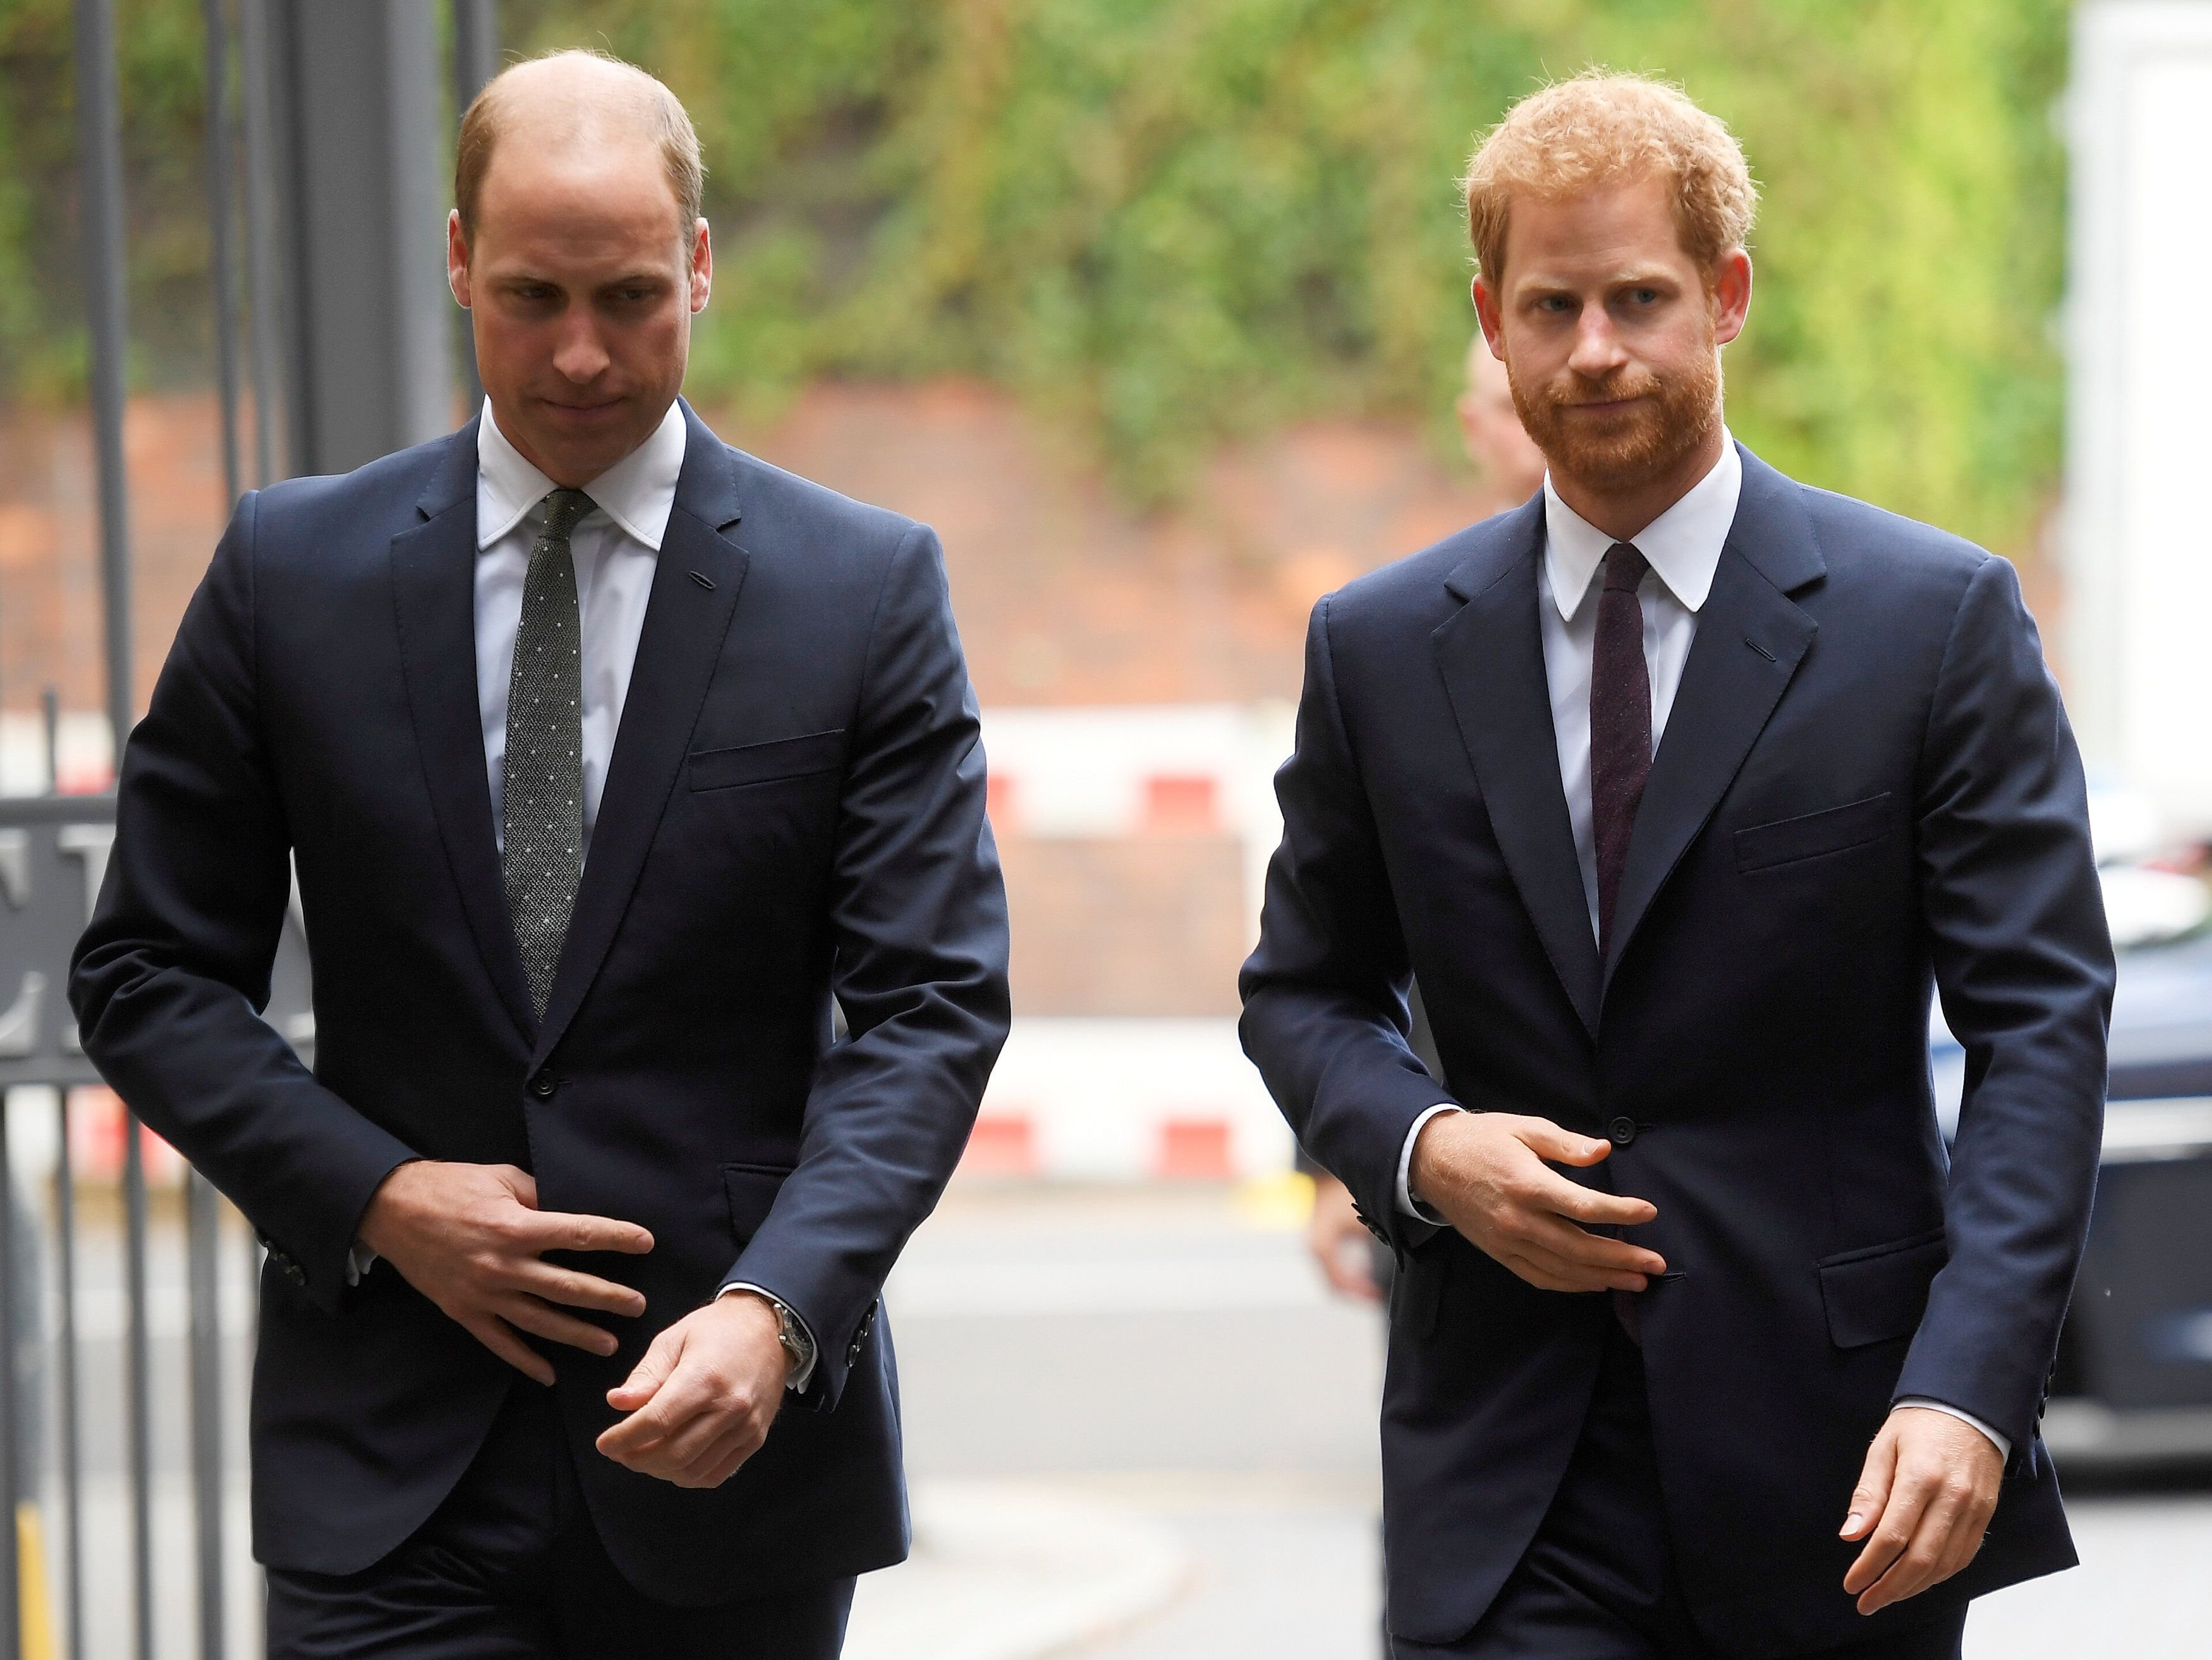 Prince William and Prince Harry at the newly established Royal Foundation Support4Grenfell community hub on September 5, 2017   Photo: Getty Images